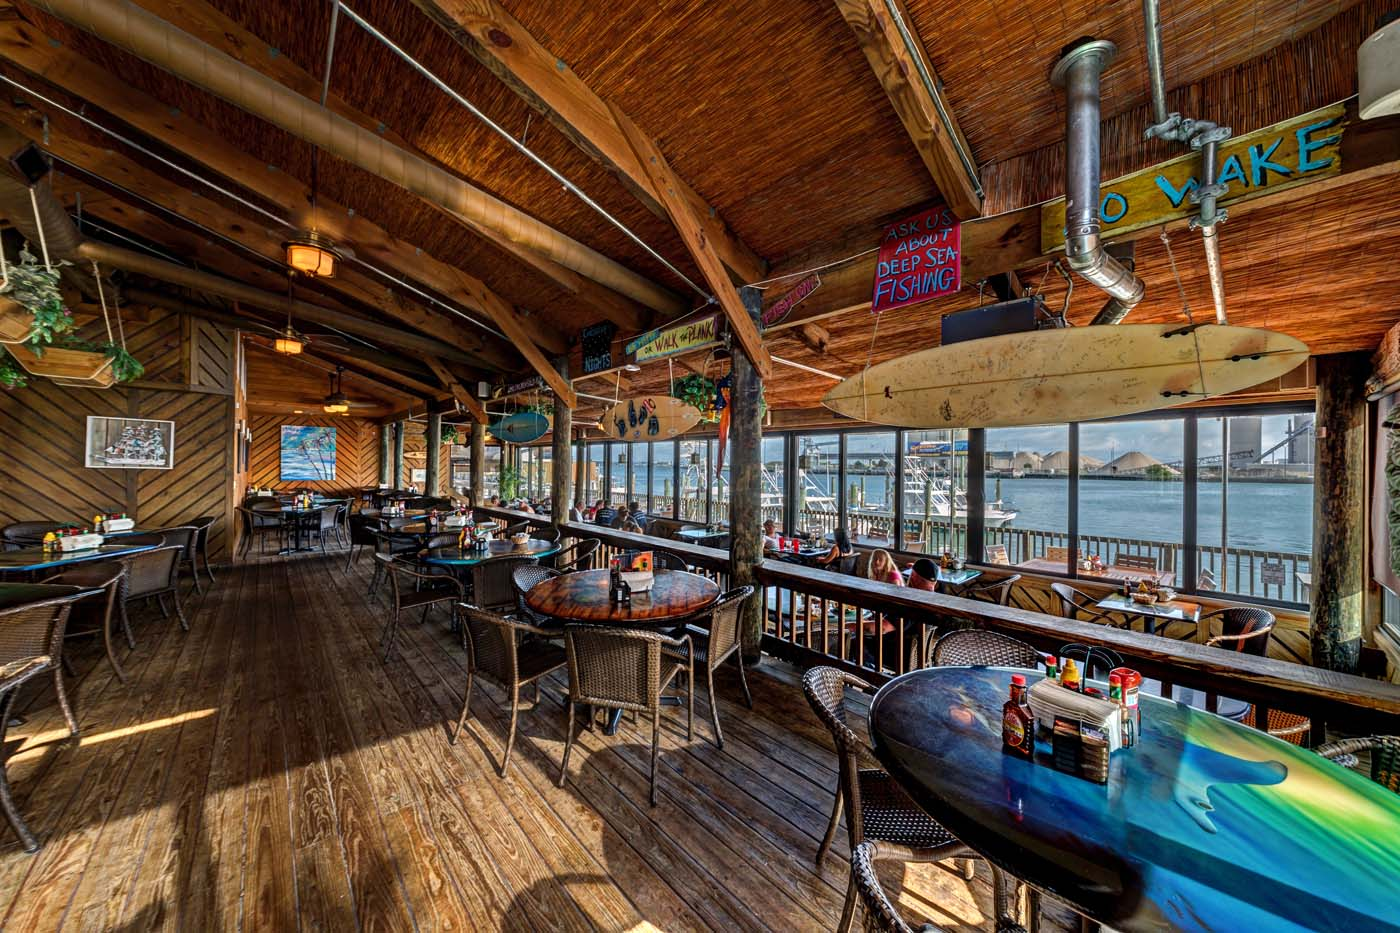 Grills seafood deck and tiki bar port canaveral florida - Grills seafood deck tiki bar ...